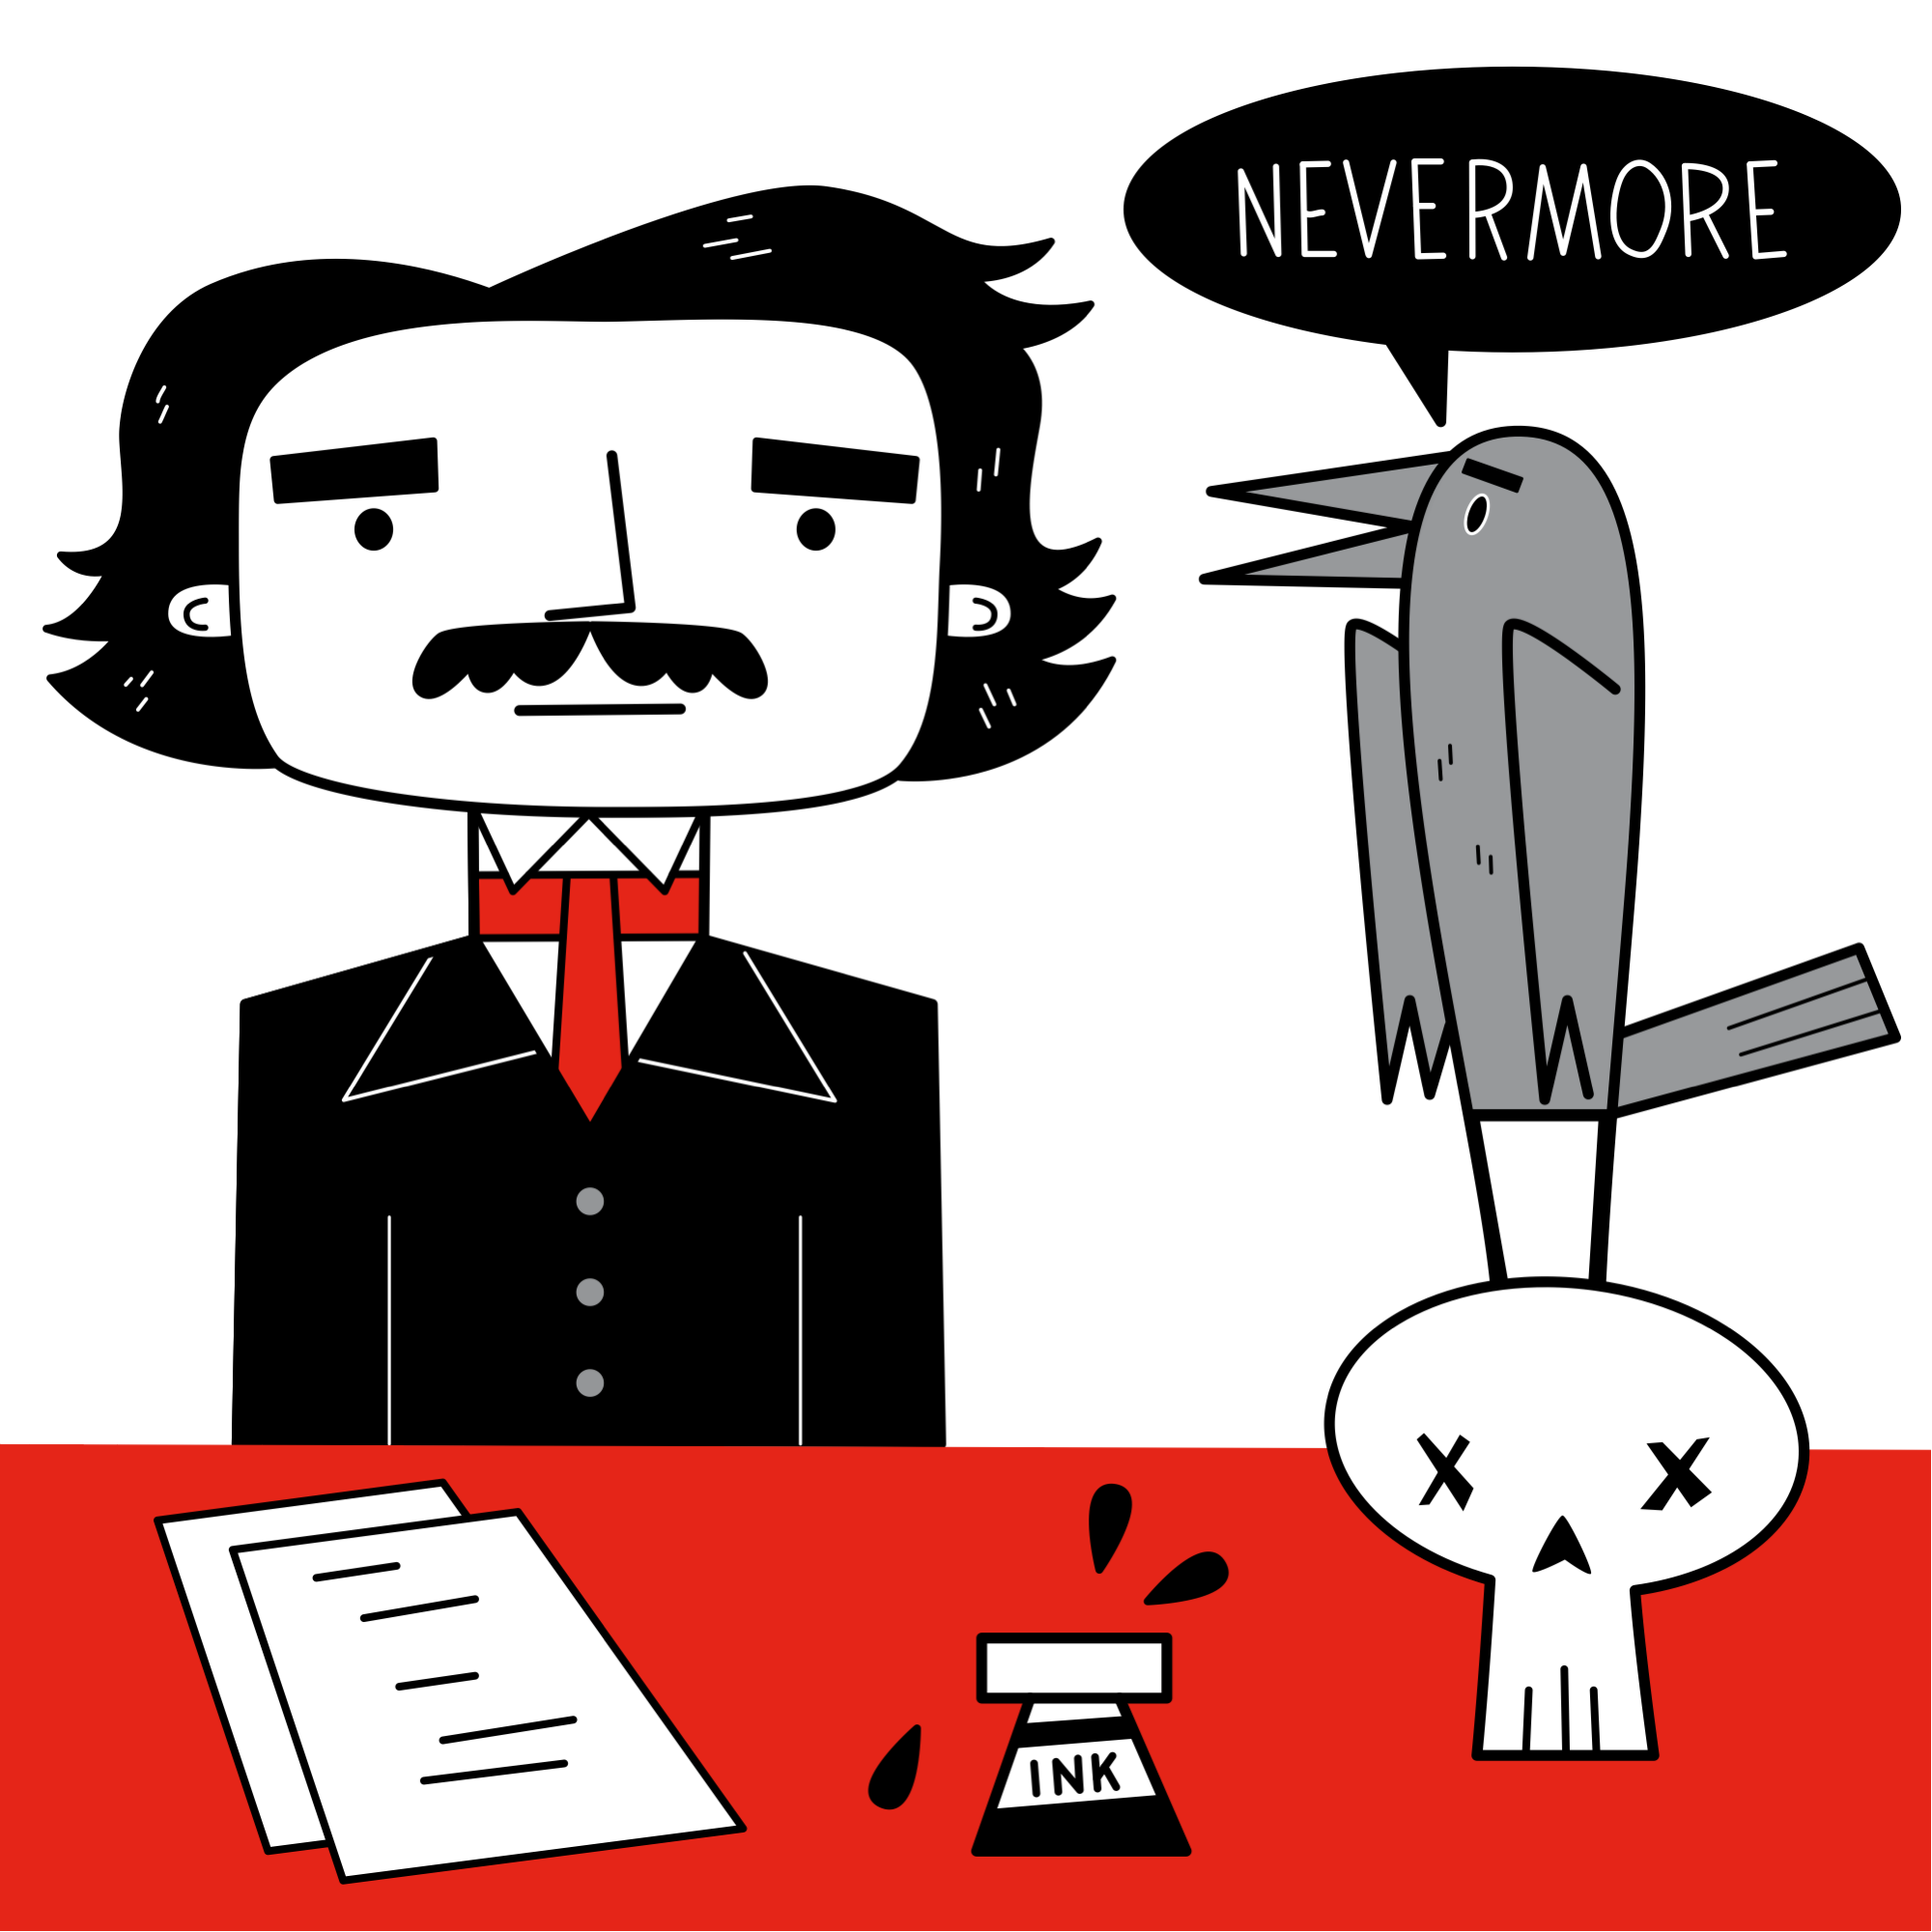 Edgar Allan Poe and the Raven illustration